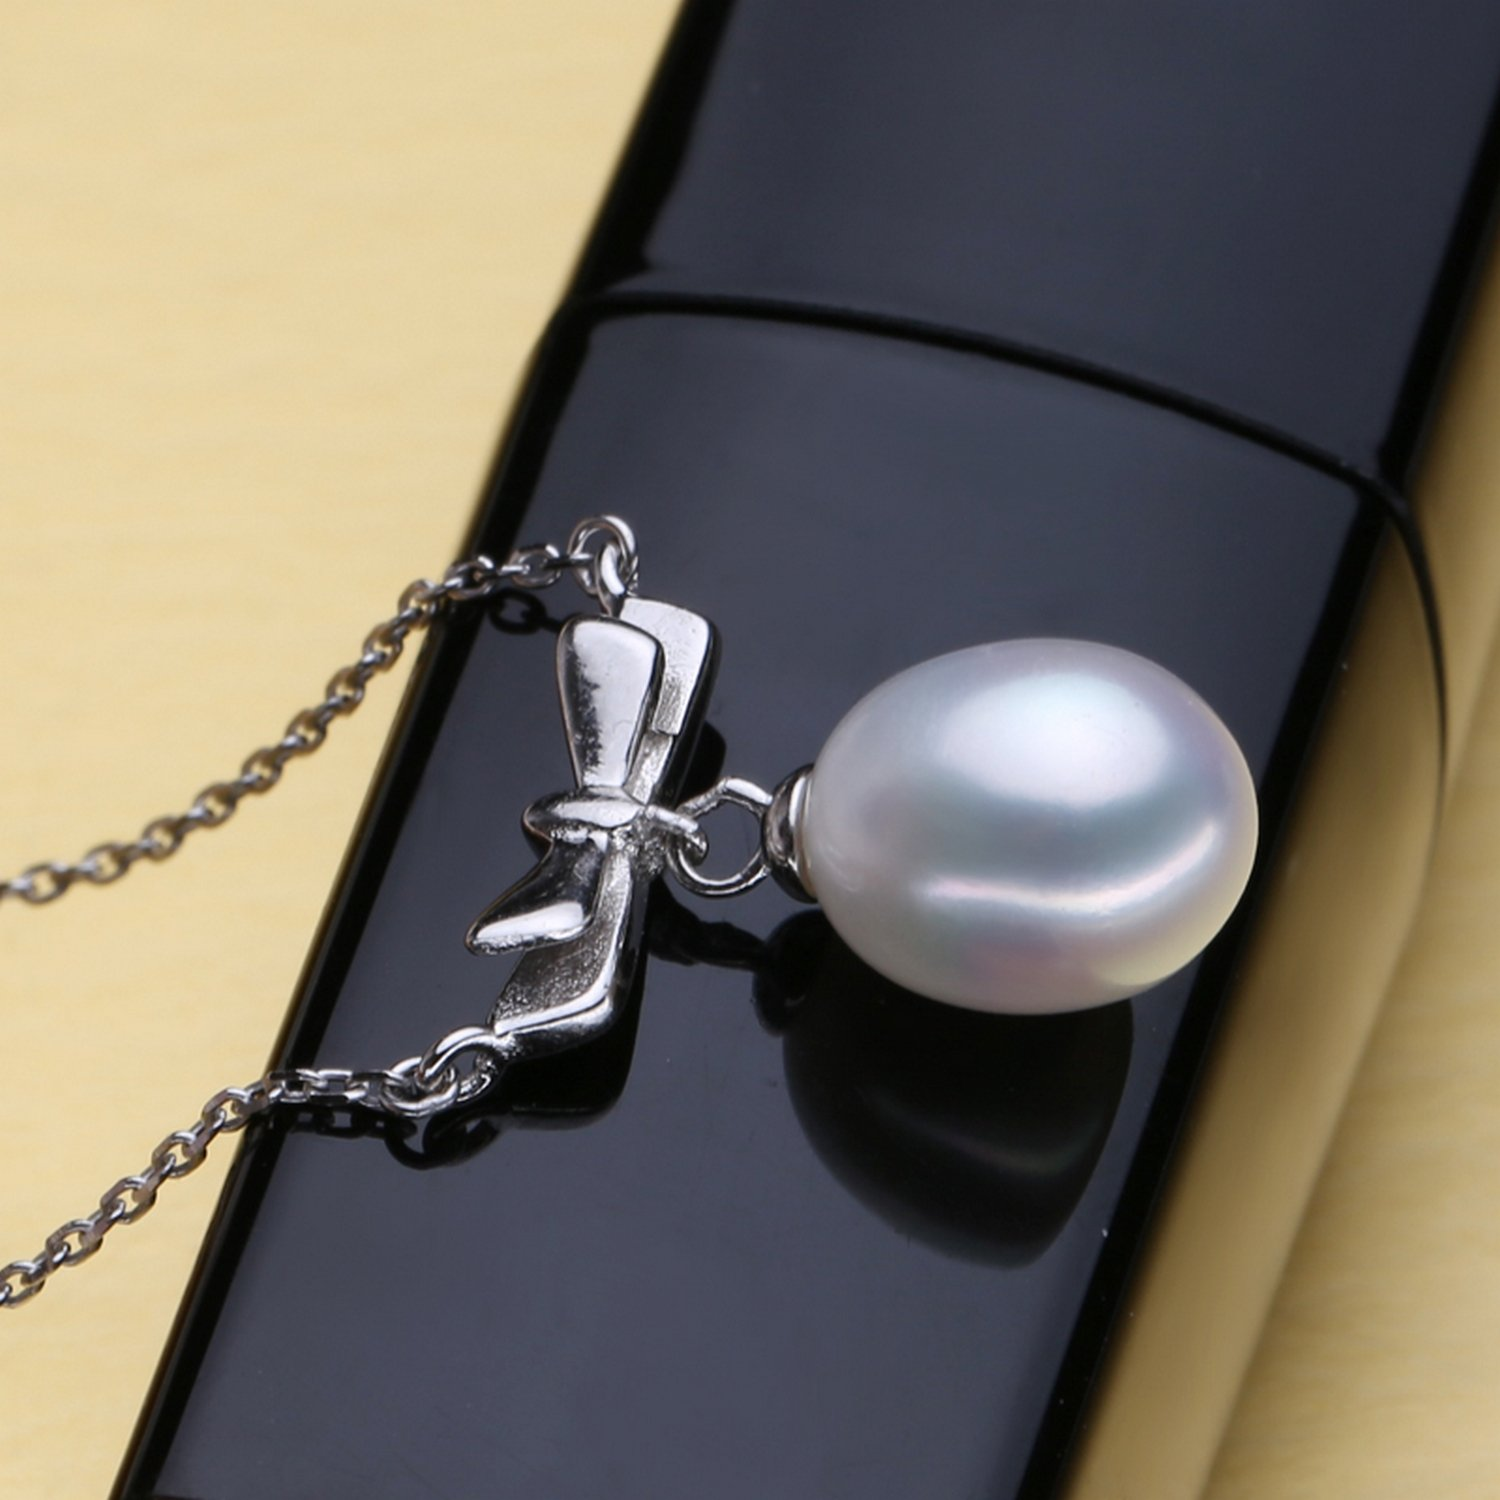 CS-DB Jewelry Silver Genuine Pearl Bowknot Stone Chain Charm Pendants Necklaces